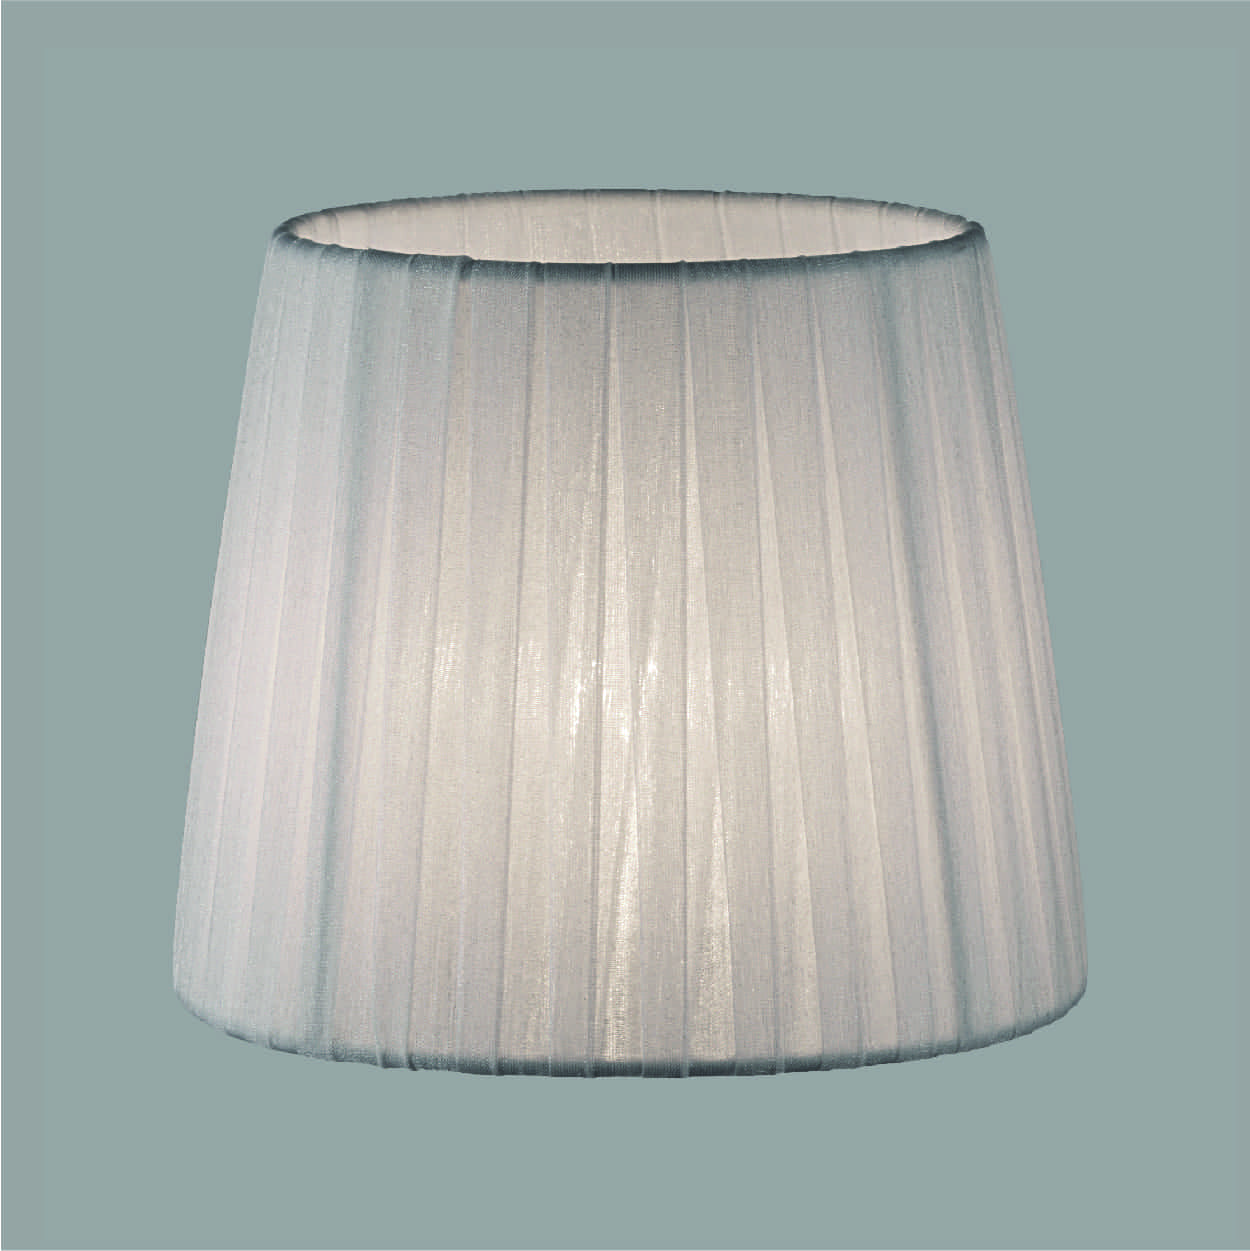 Lampshade finishes